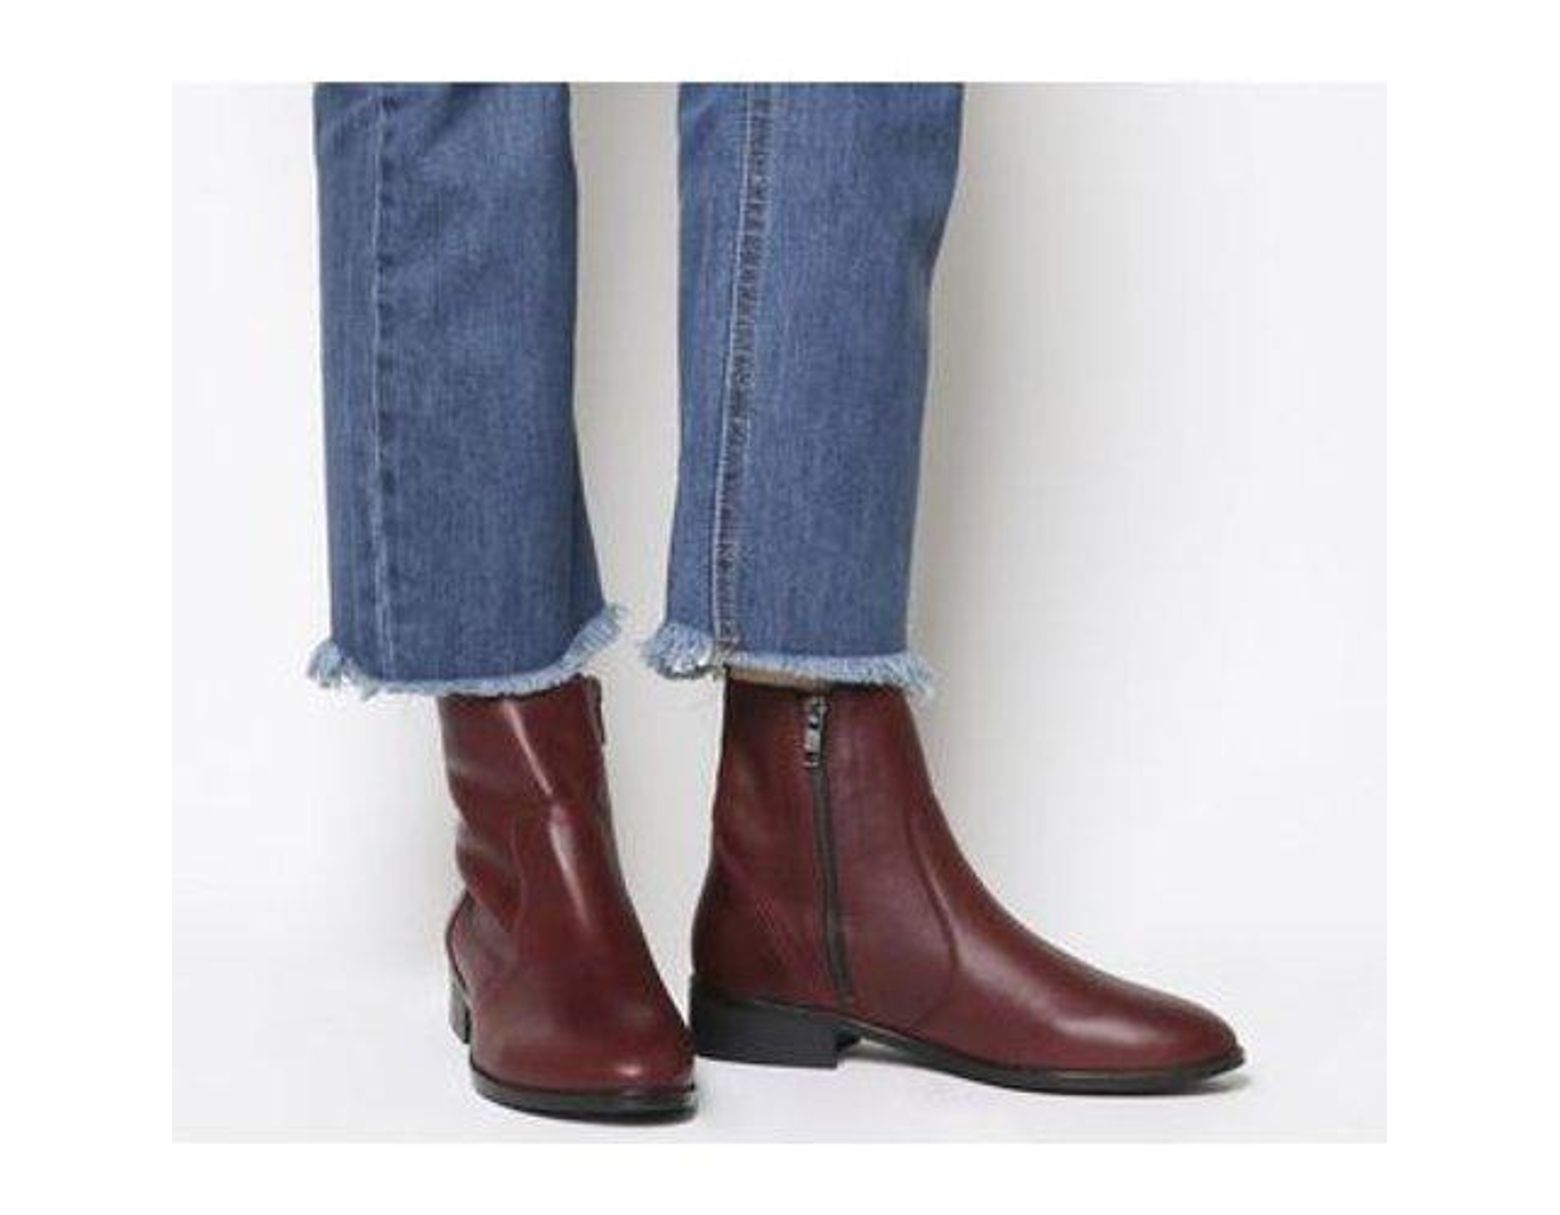 cb8c1982c38 Office Ashleigh Flat Ankle Boots in Red - Lyst